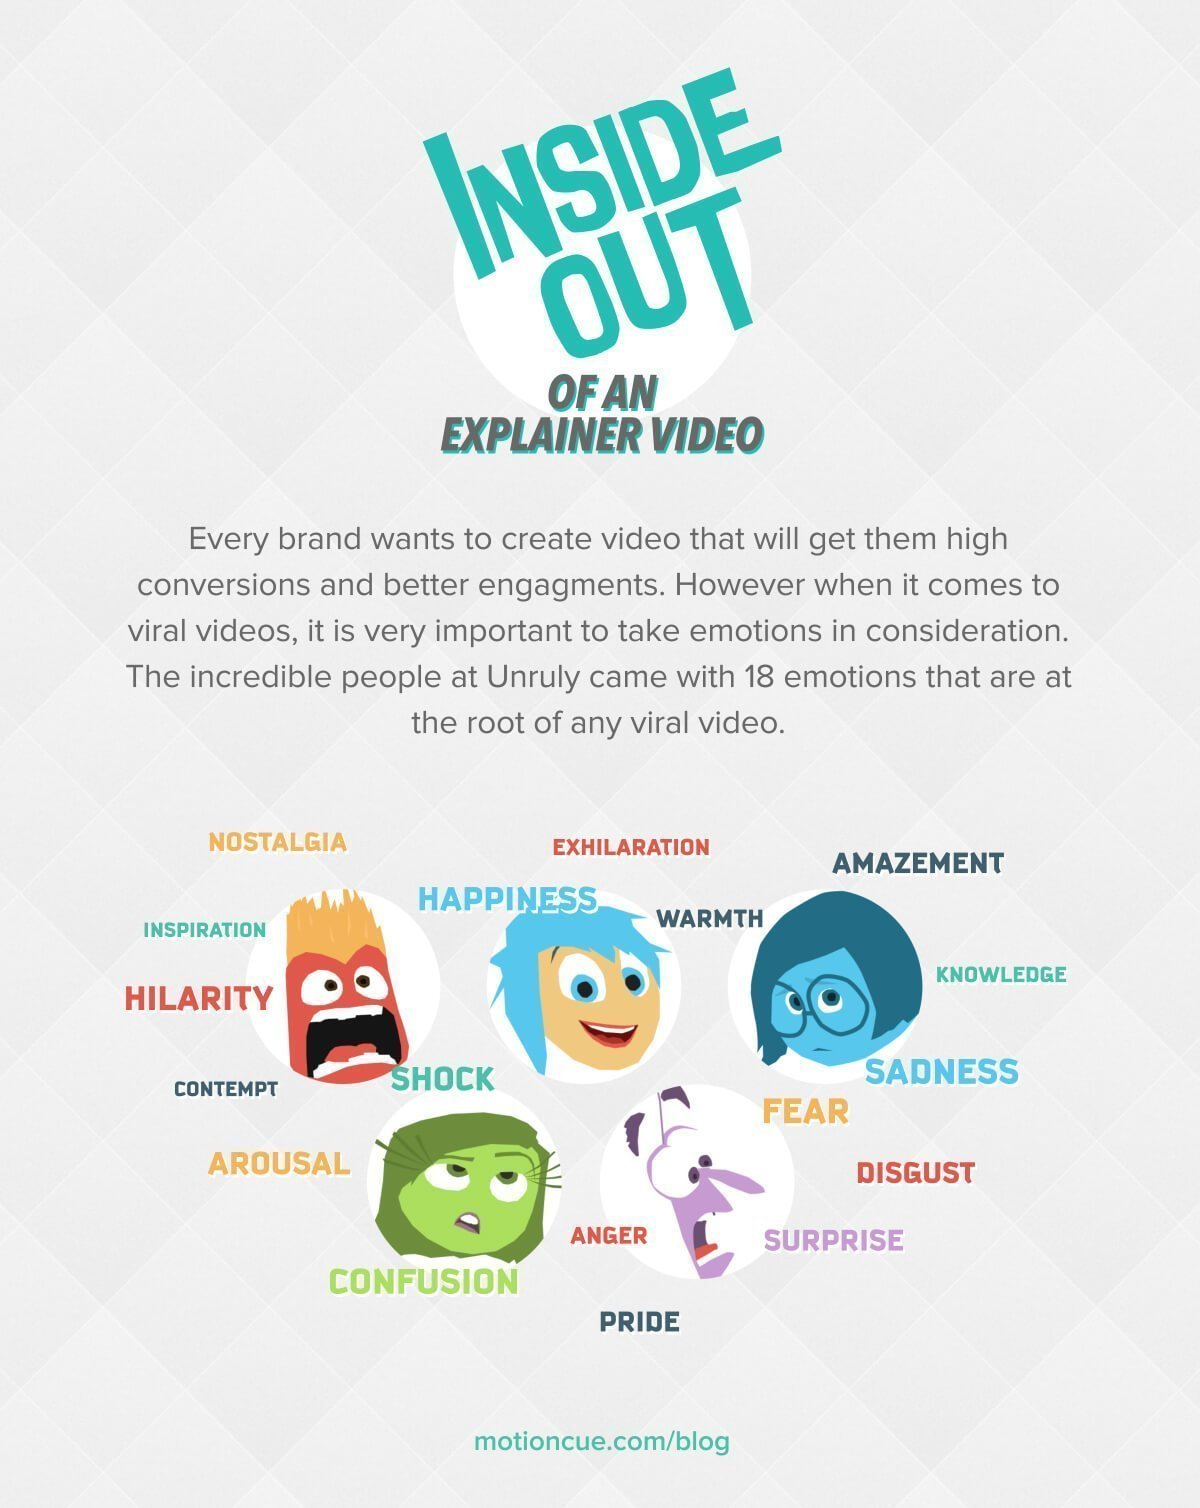 InsideOut of an explainer video